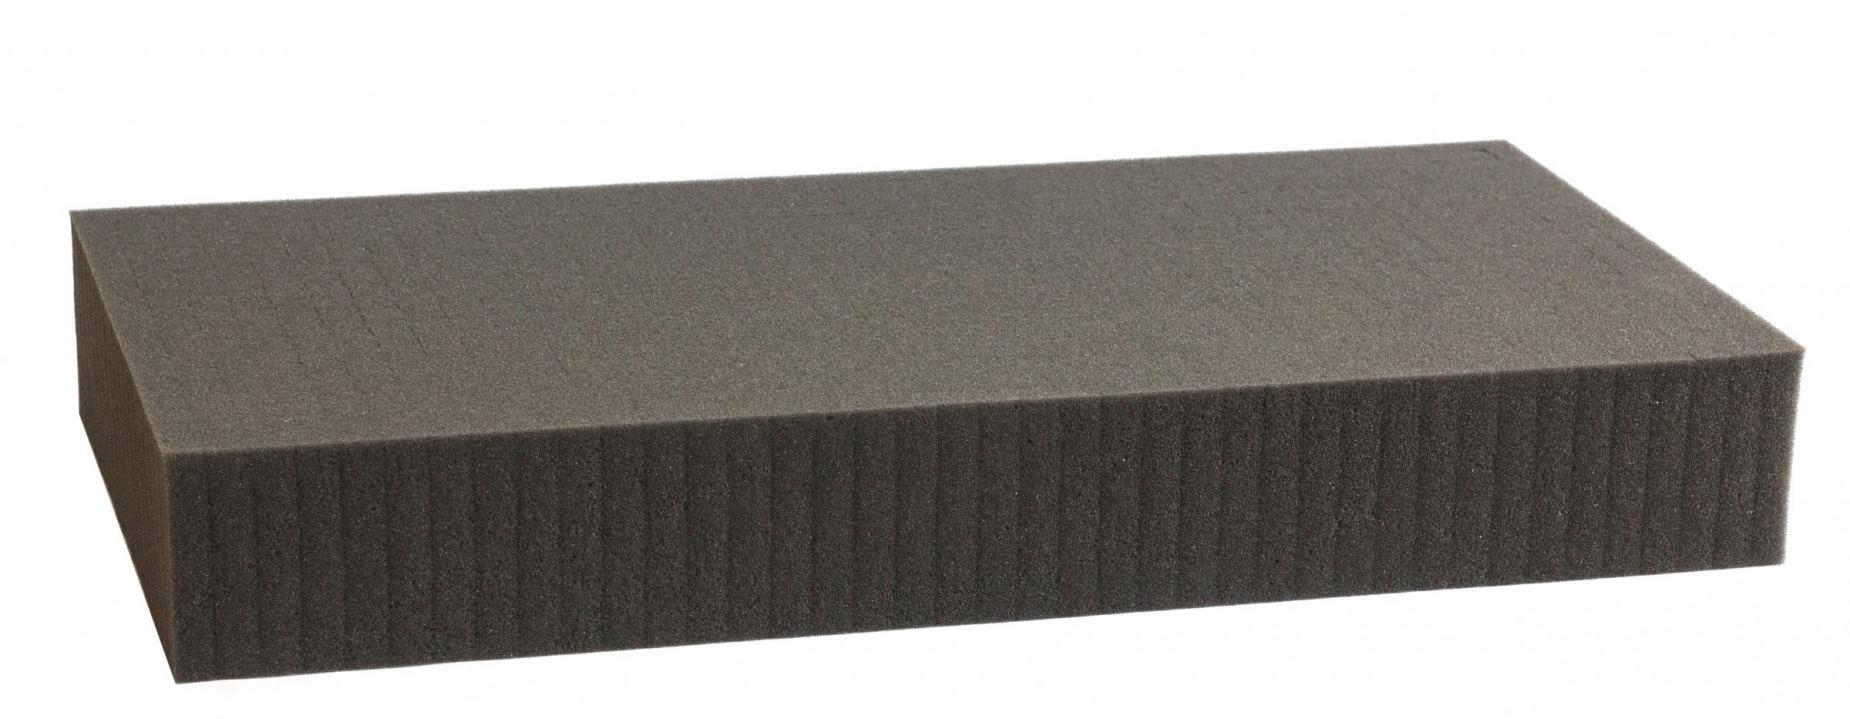 850 mm x 450 mm x 70 mm - Raster 15 mm - Pick and Pluck / Pre-Cubed foam tray